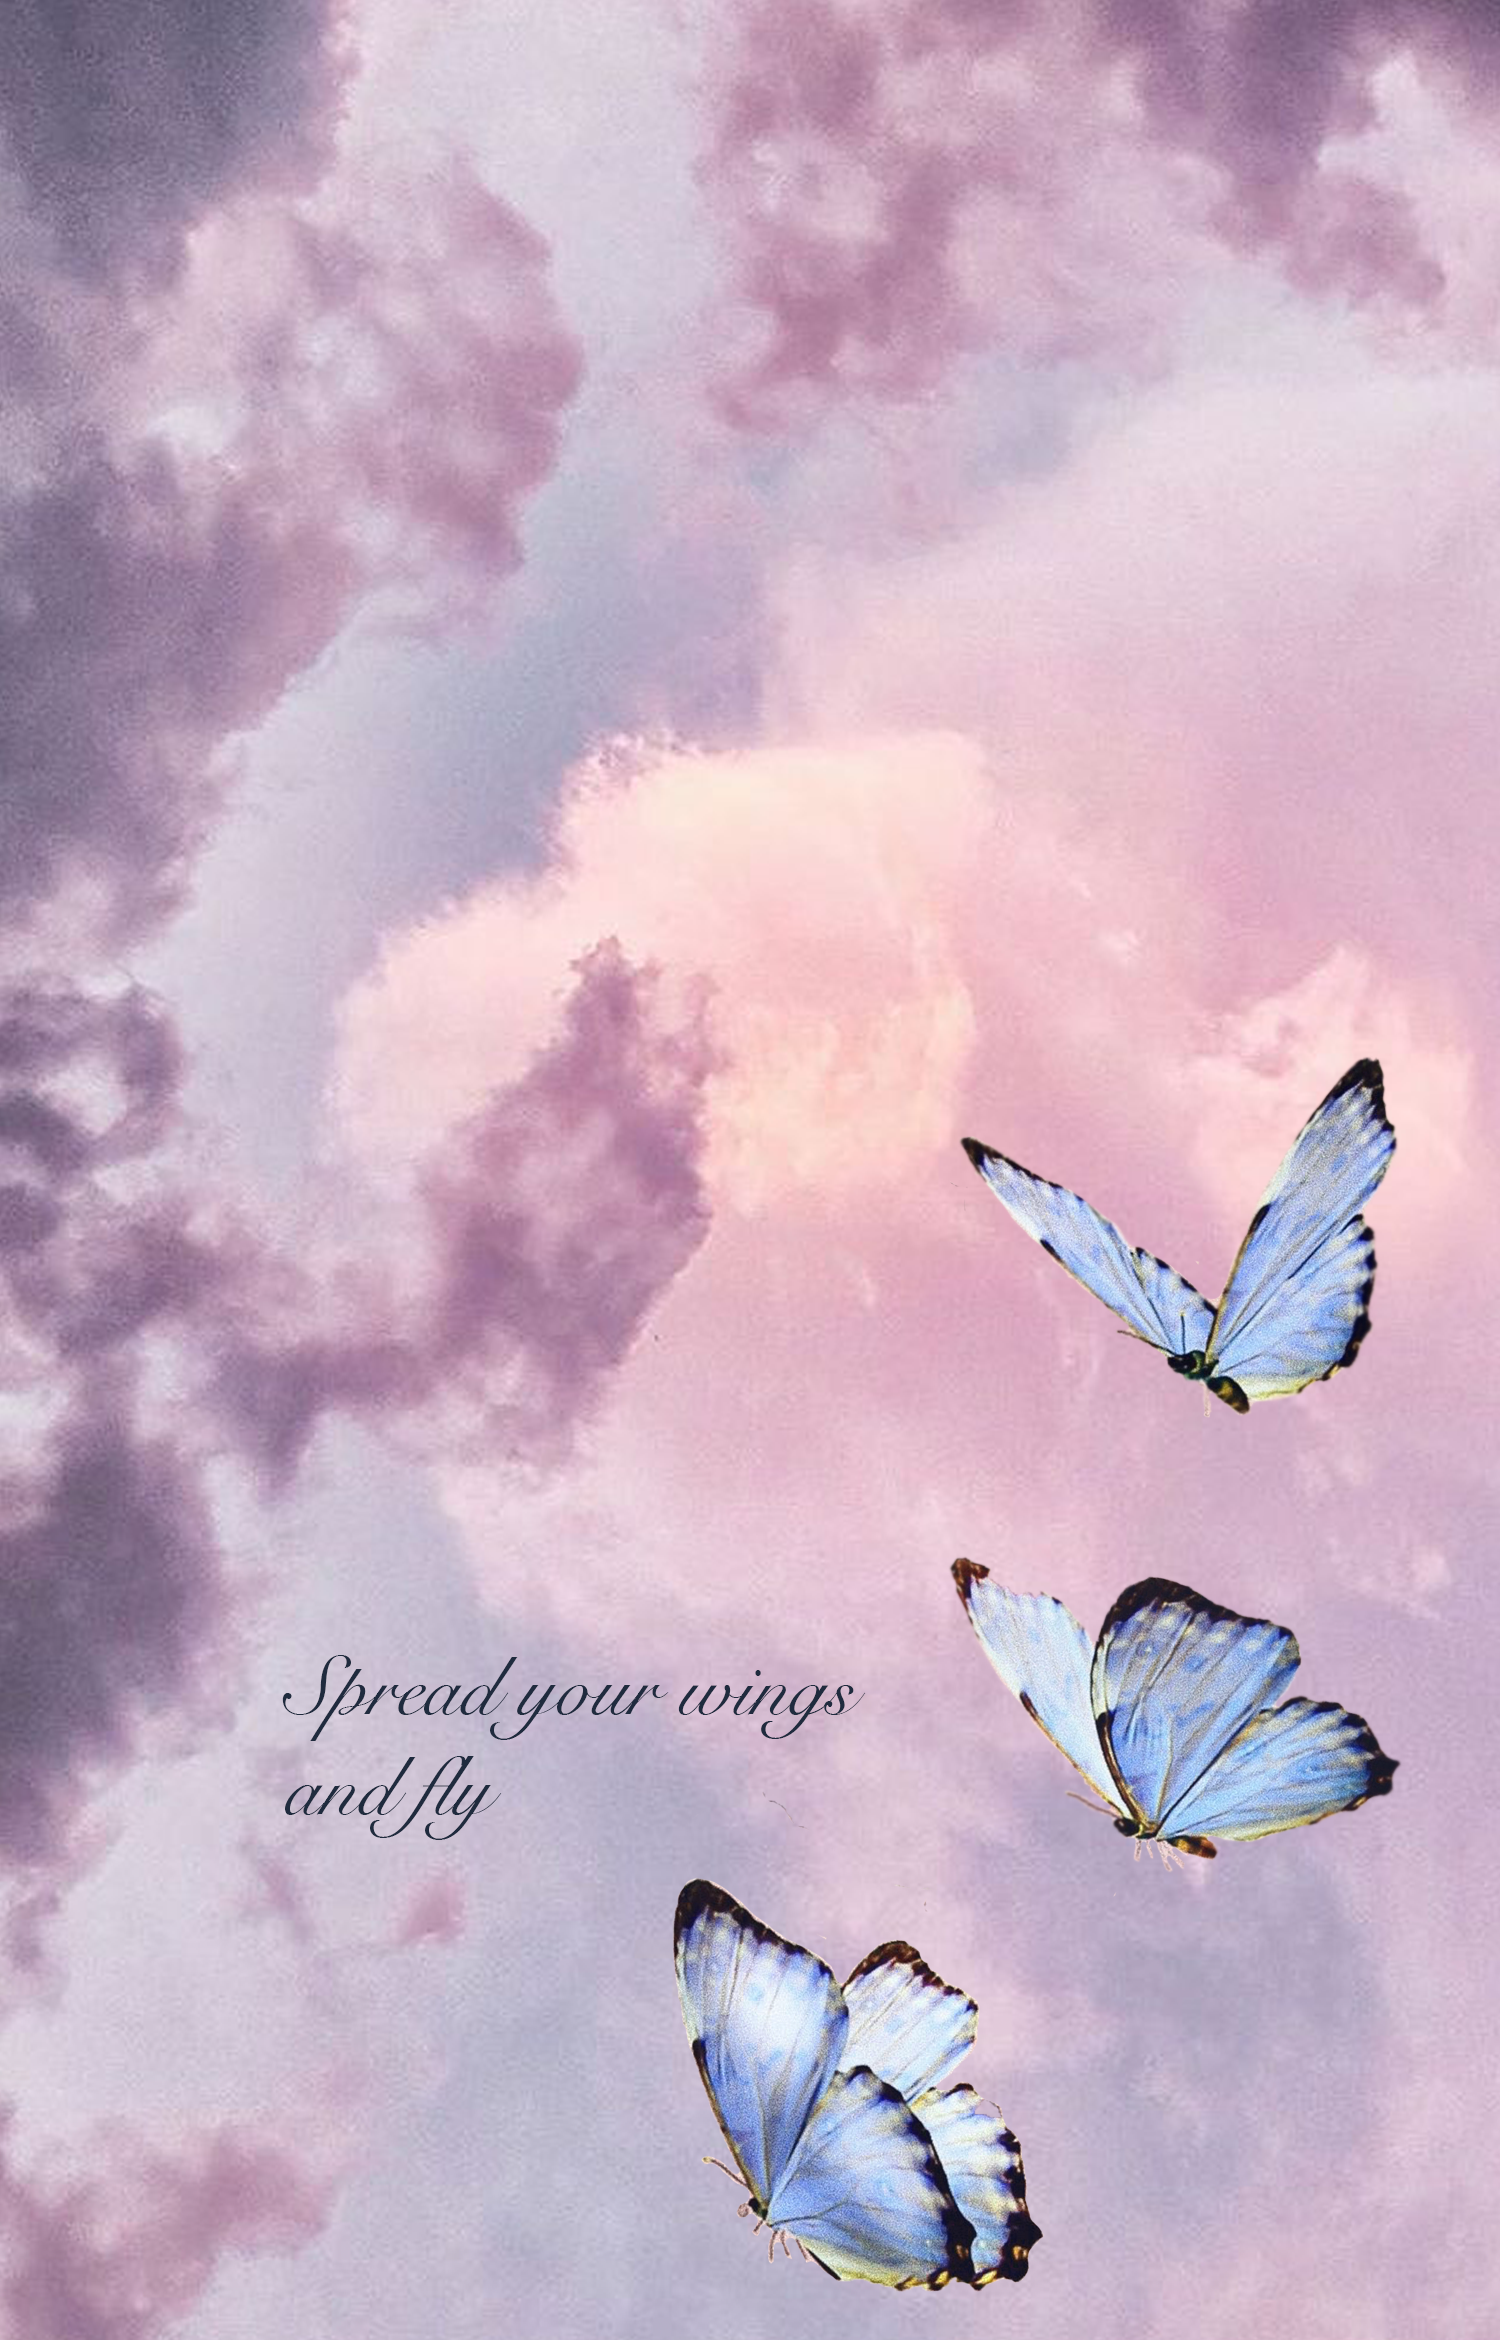 My First Background Butterfly Wallpaper Iphone Wallpaper Tumblr Aesthetic Iphone Background Wallpaper